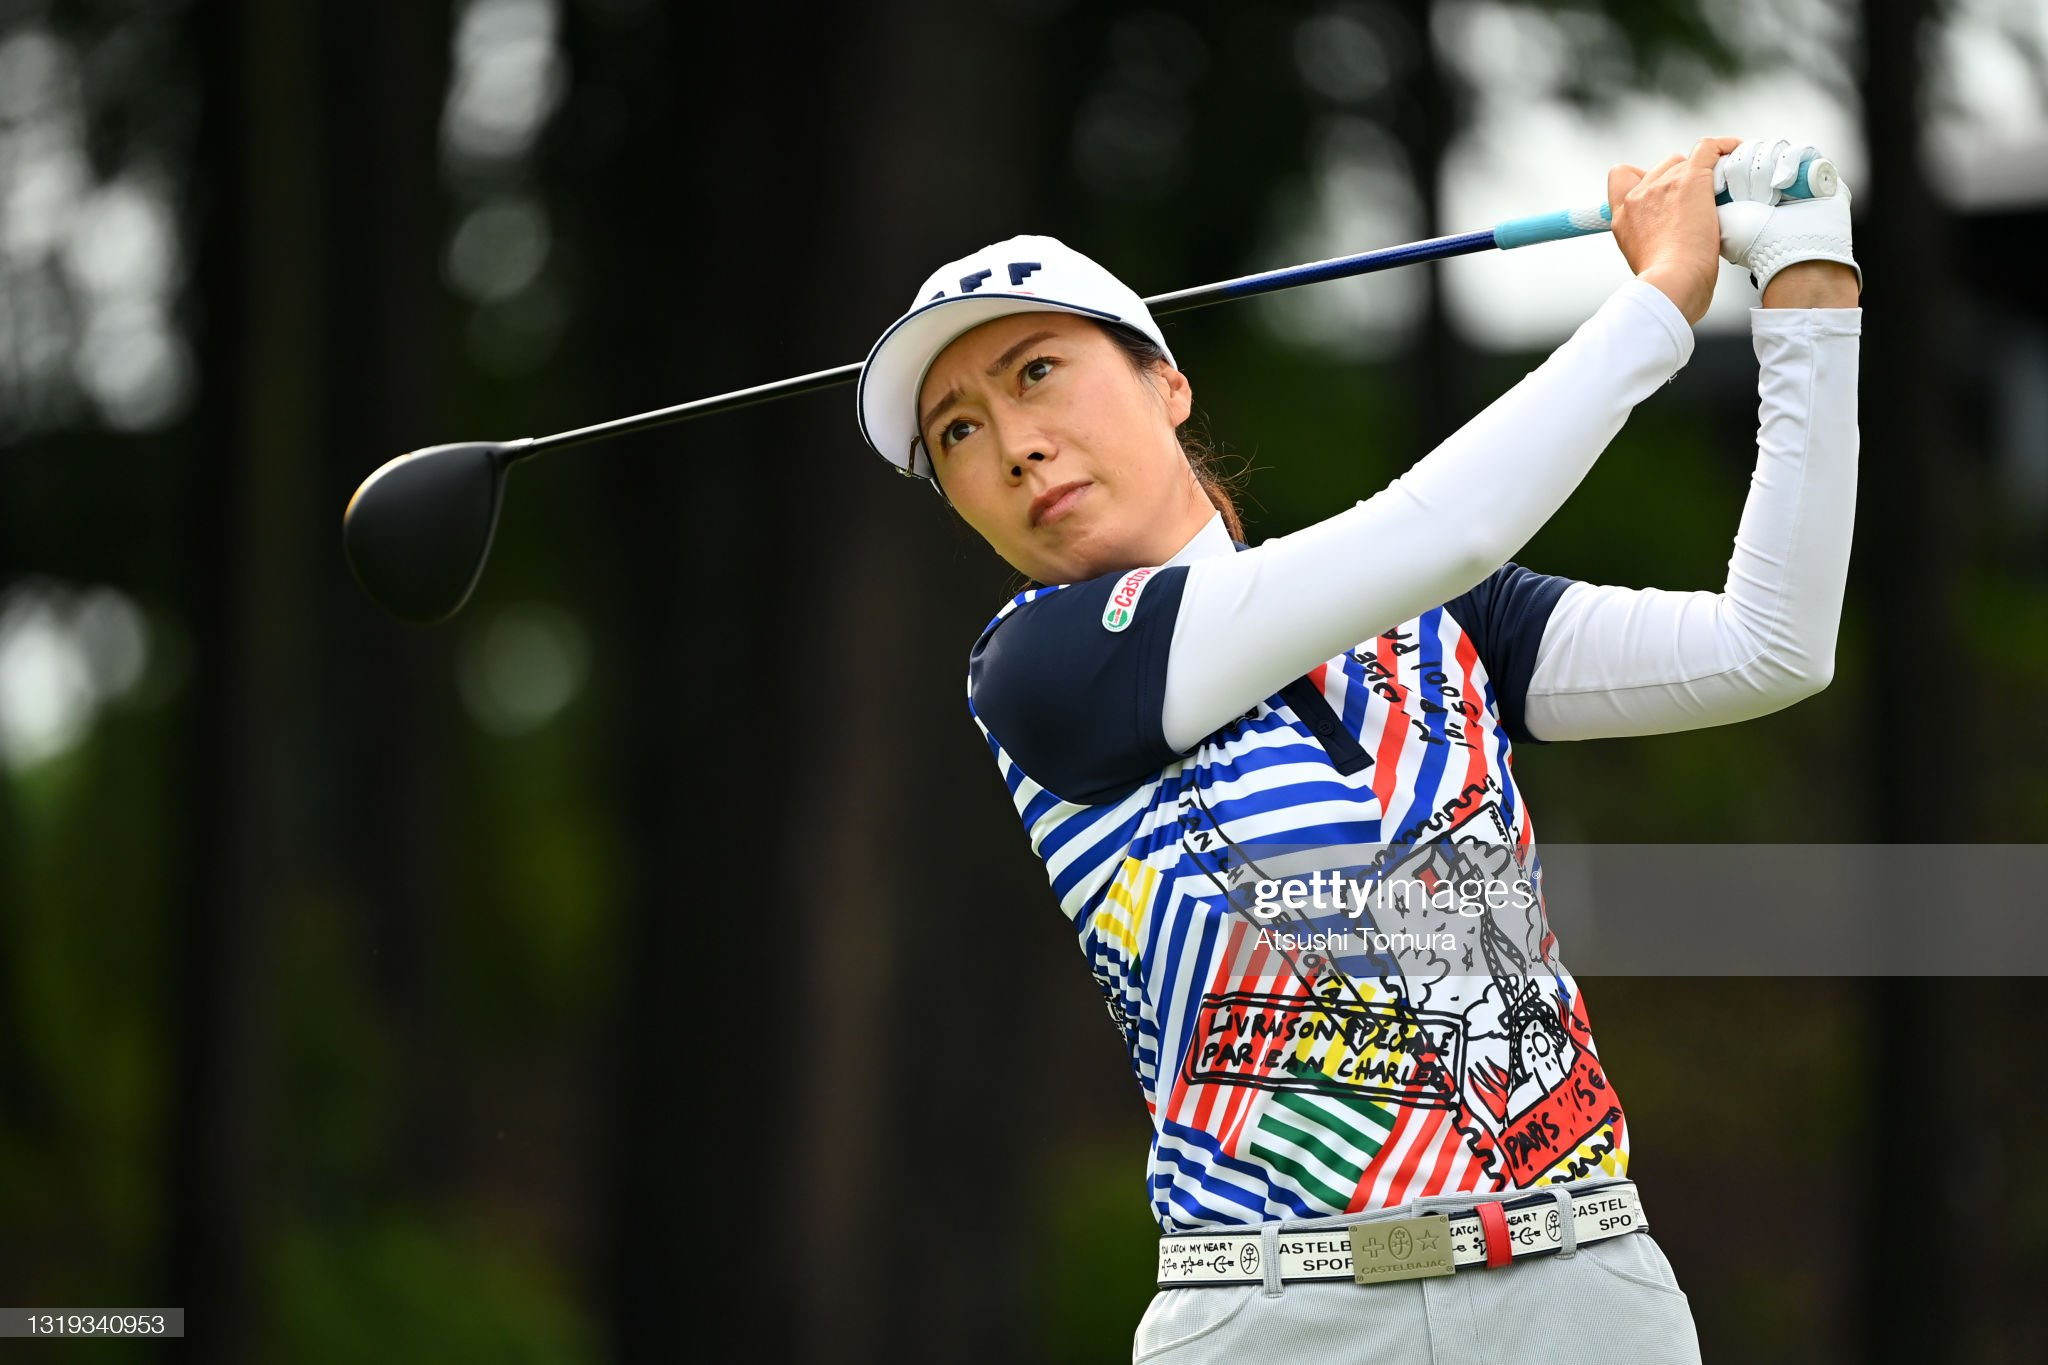 https://media.gettyimages.com/photos/jihee-lee-of-south-korea-hits-her-tee-shot-on-the-1st-hole-during-the-picture-id1319340953?s=2048x2048